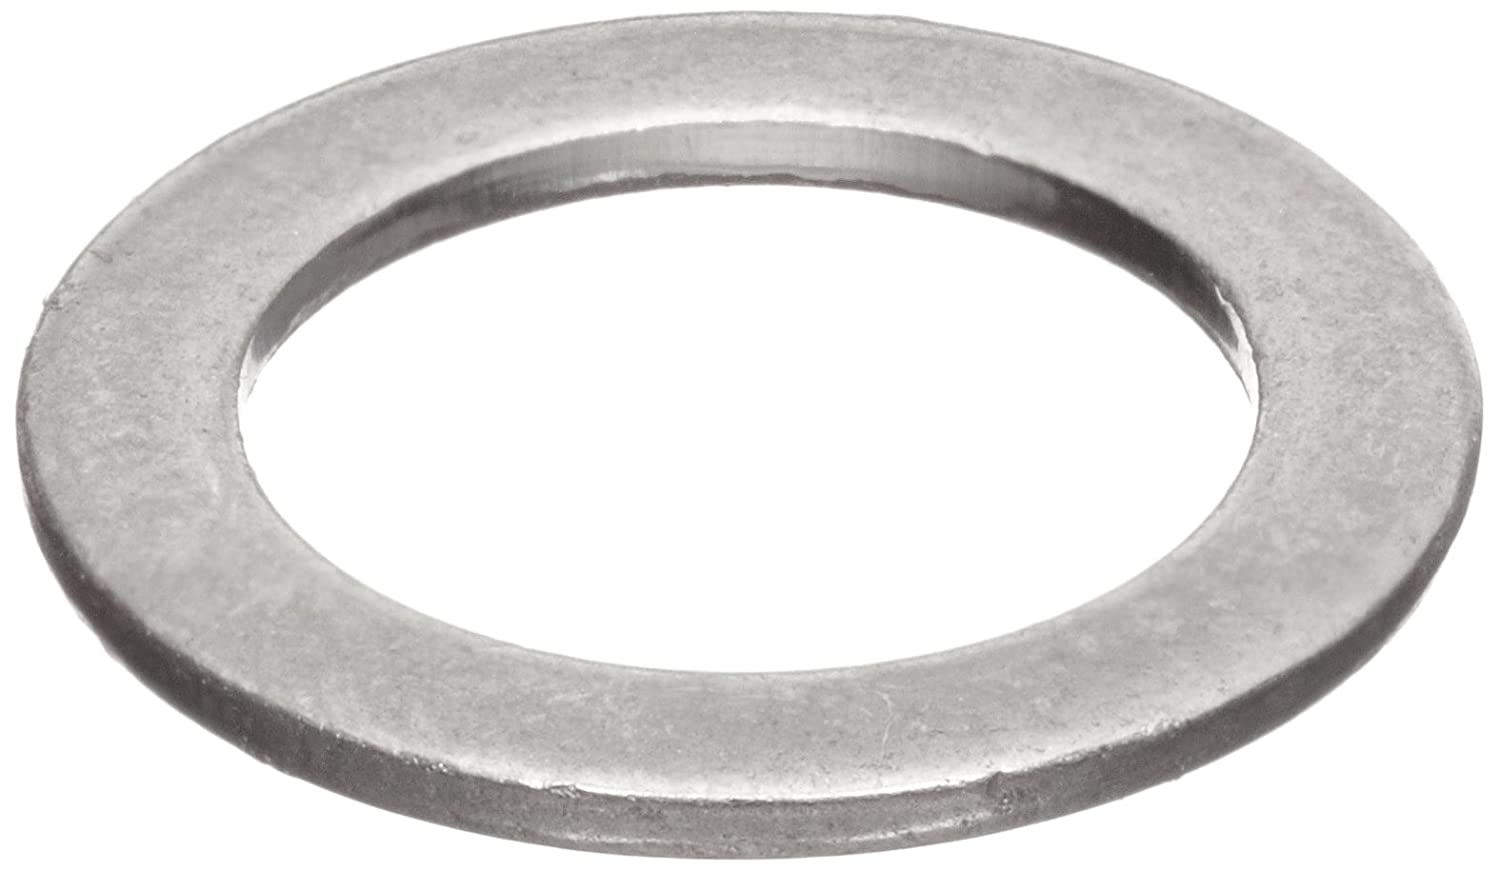 3//8 Bolt Size 0.376 ID Accurate Manufacturing Z9897-030 0.030 Thick Shoulder-Shortening Shim Flat Washer .563 OD Pack of 50 Pack of 50 18-8 Stainless Steel 3//8 Bolt Size 0.376 ID .563 OD 0.030 Thick